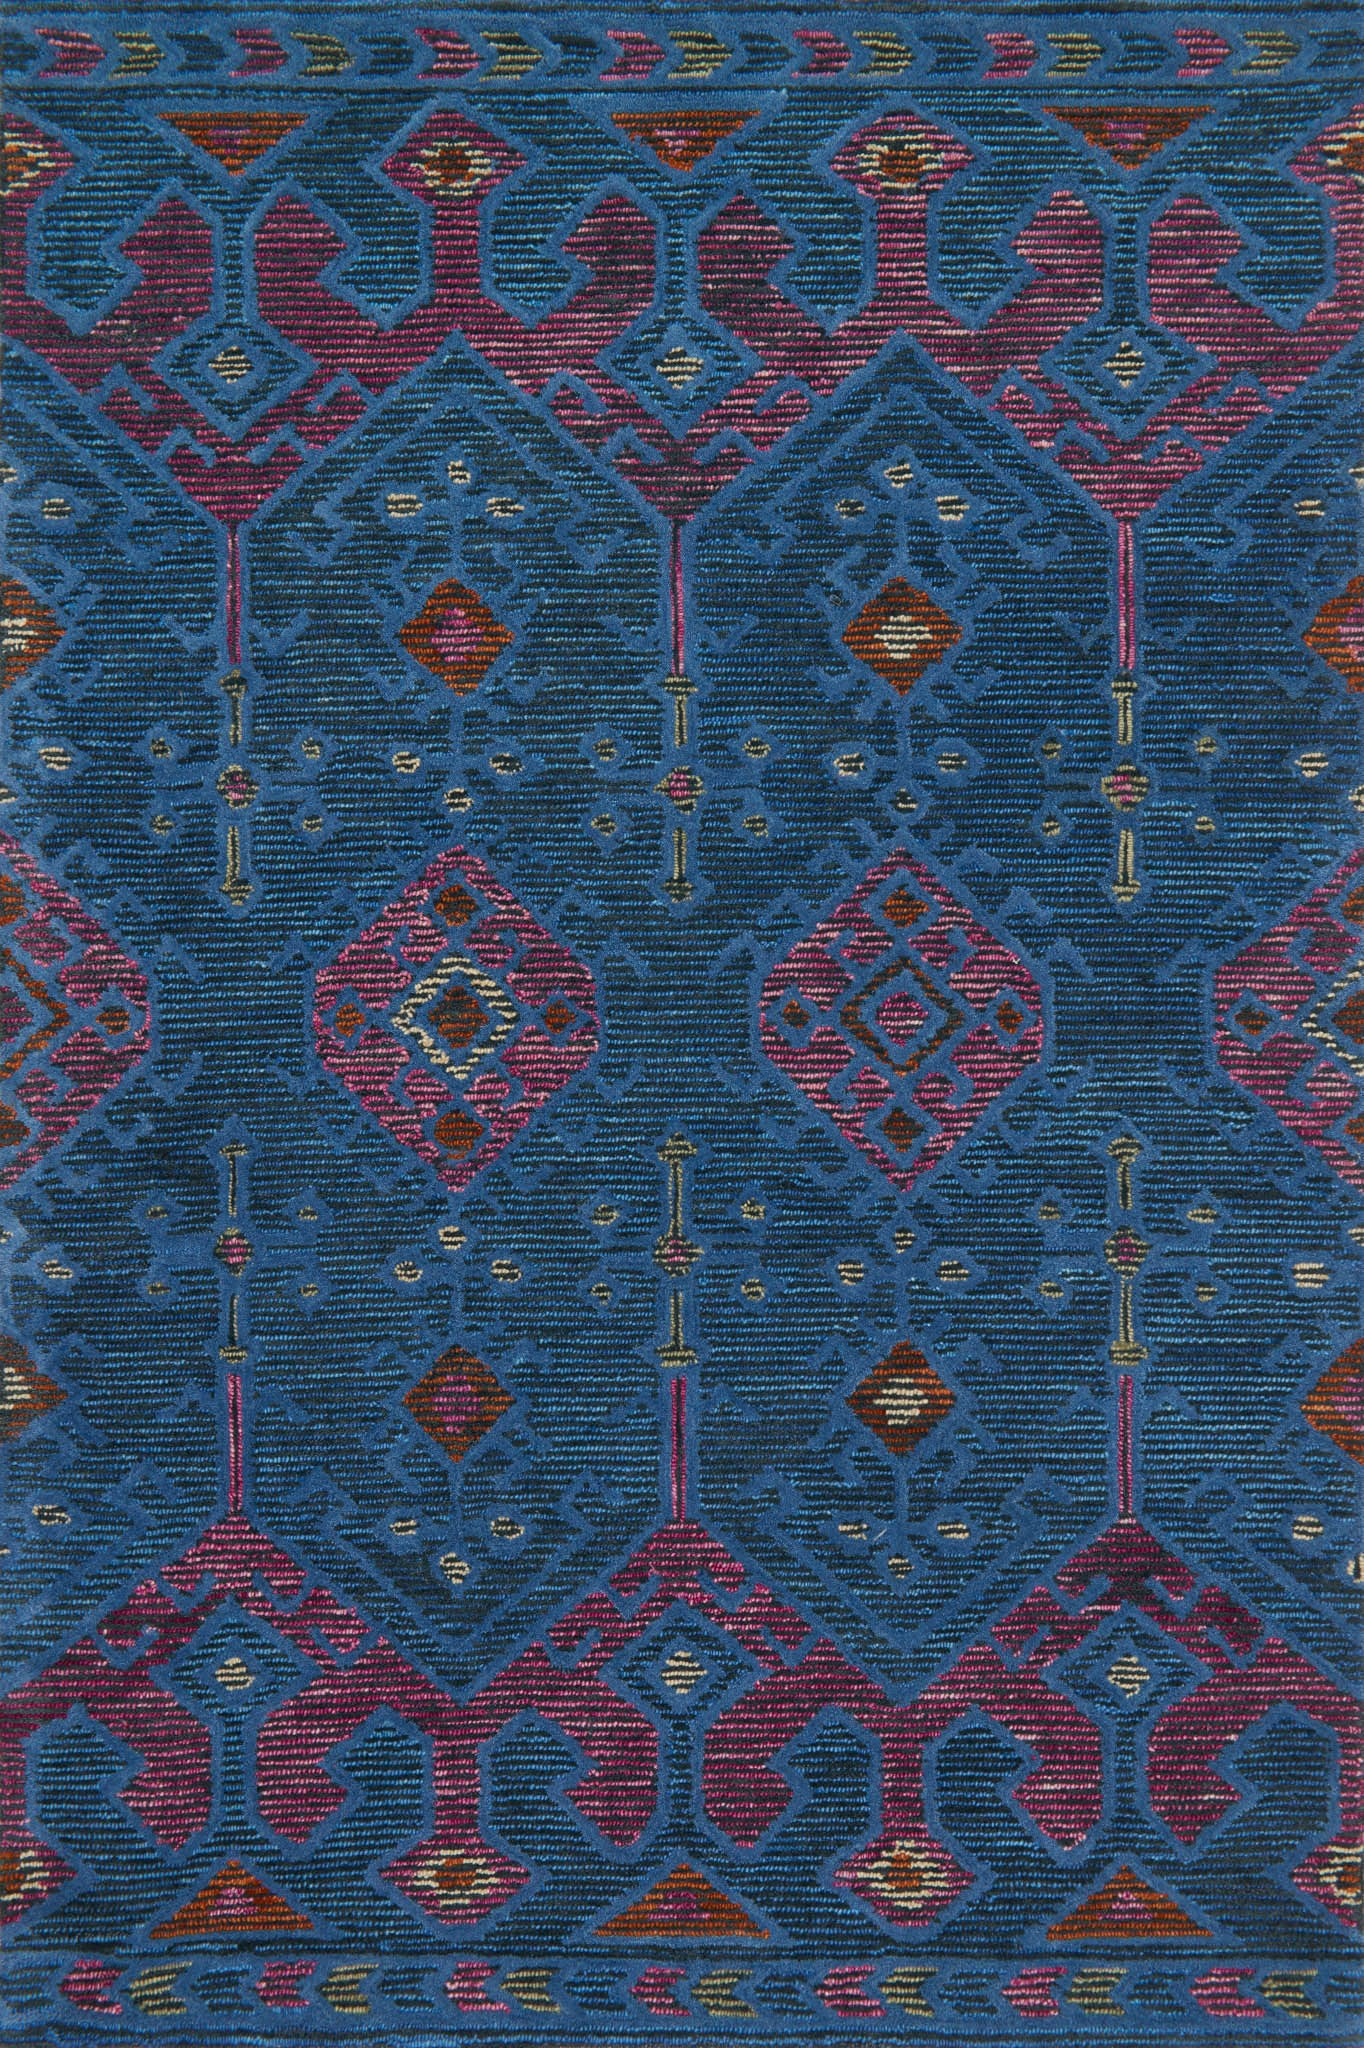 Loloi Gemology GQ-02 Blue/Plum Area Rug by Justina Blakeney main image